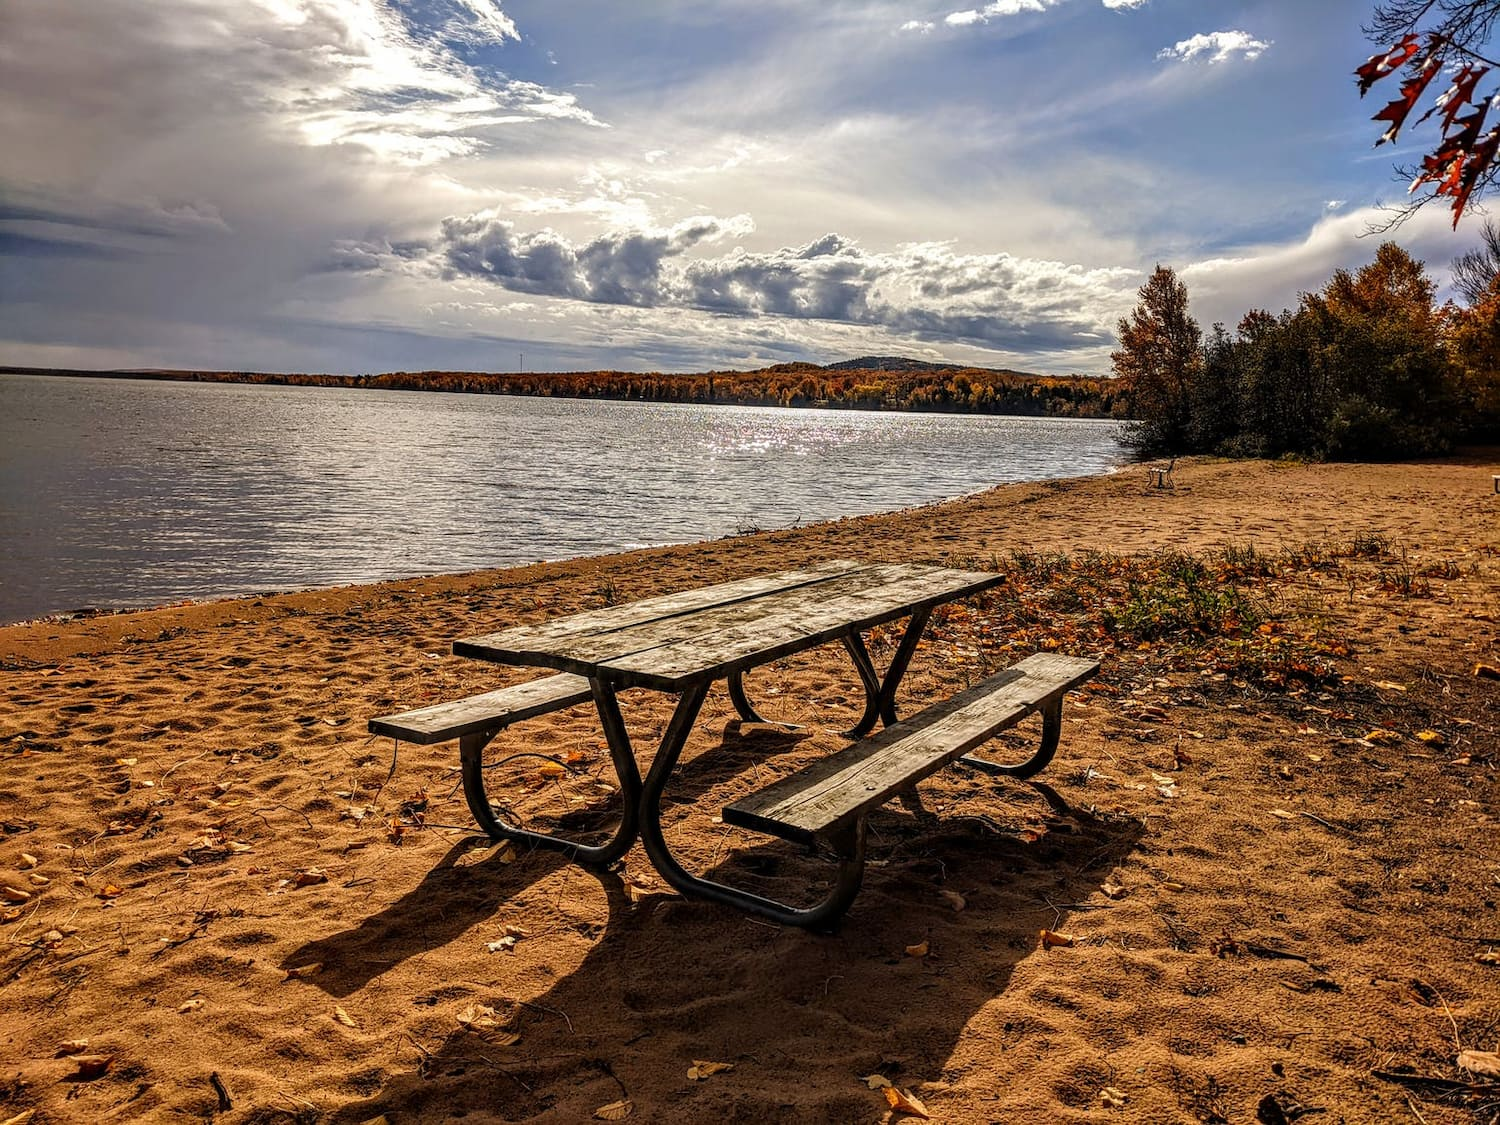 Picnic bench on the beach